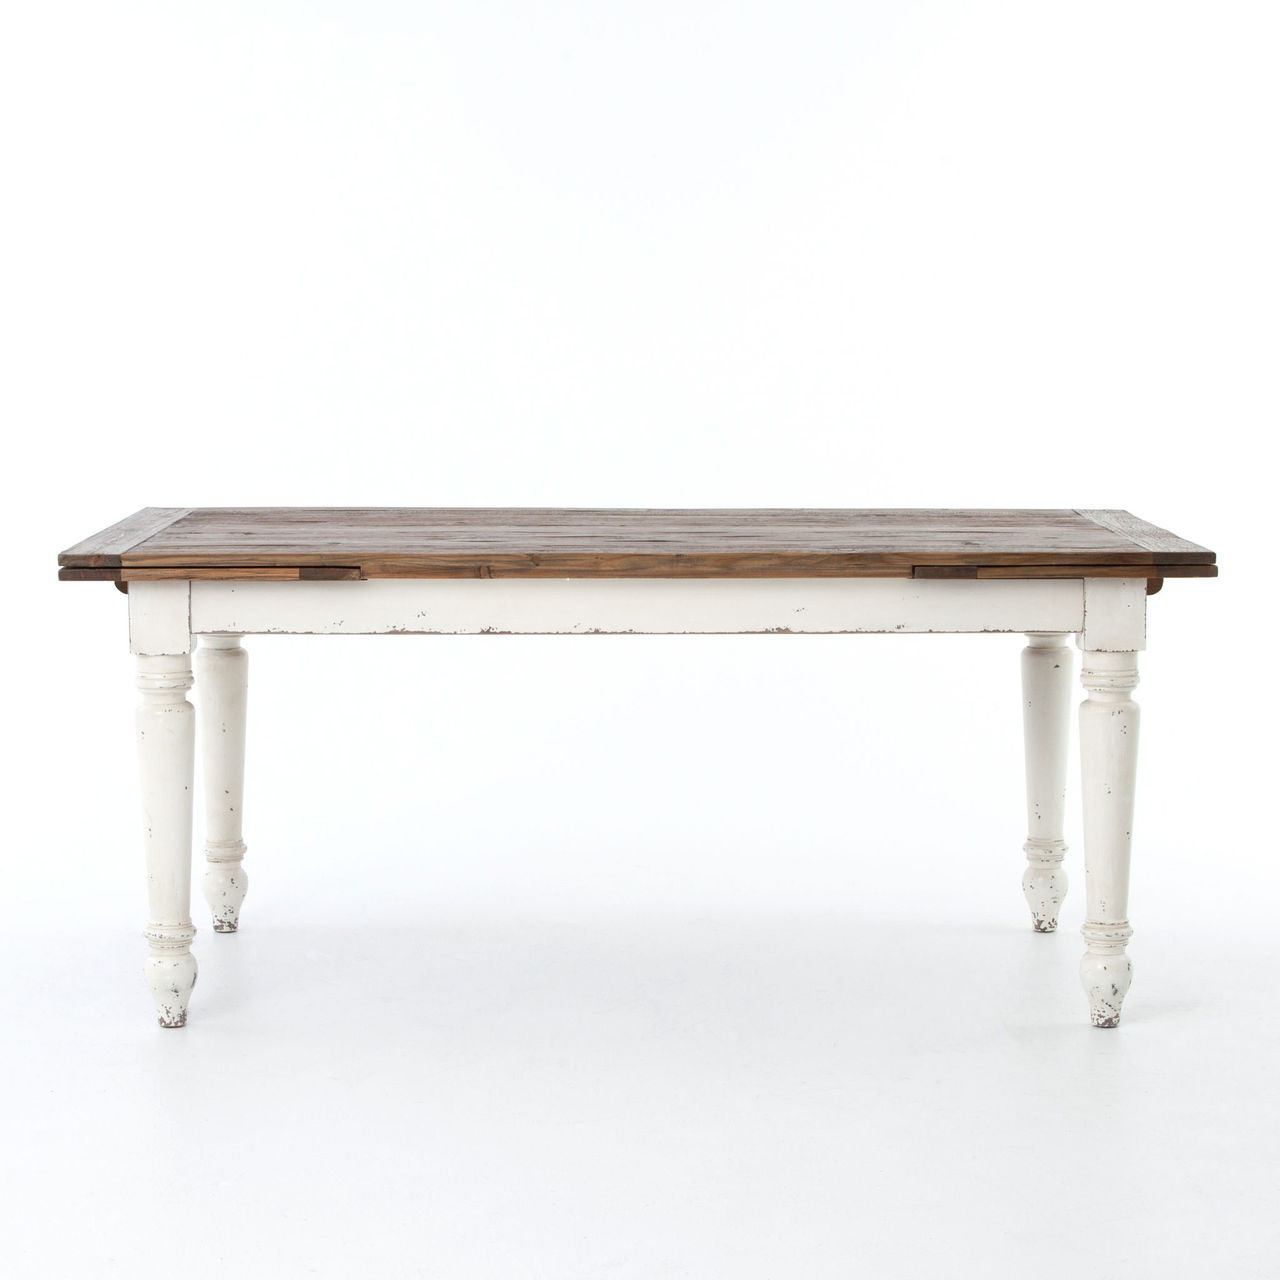 Expandable White Dining Table Cottage Reclaimed Wood White Expanding Dining Table 72 110